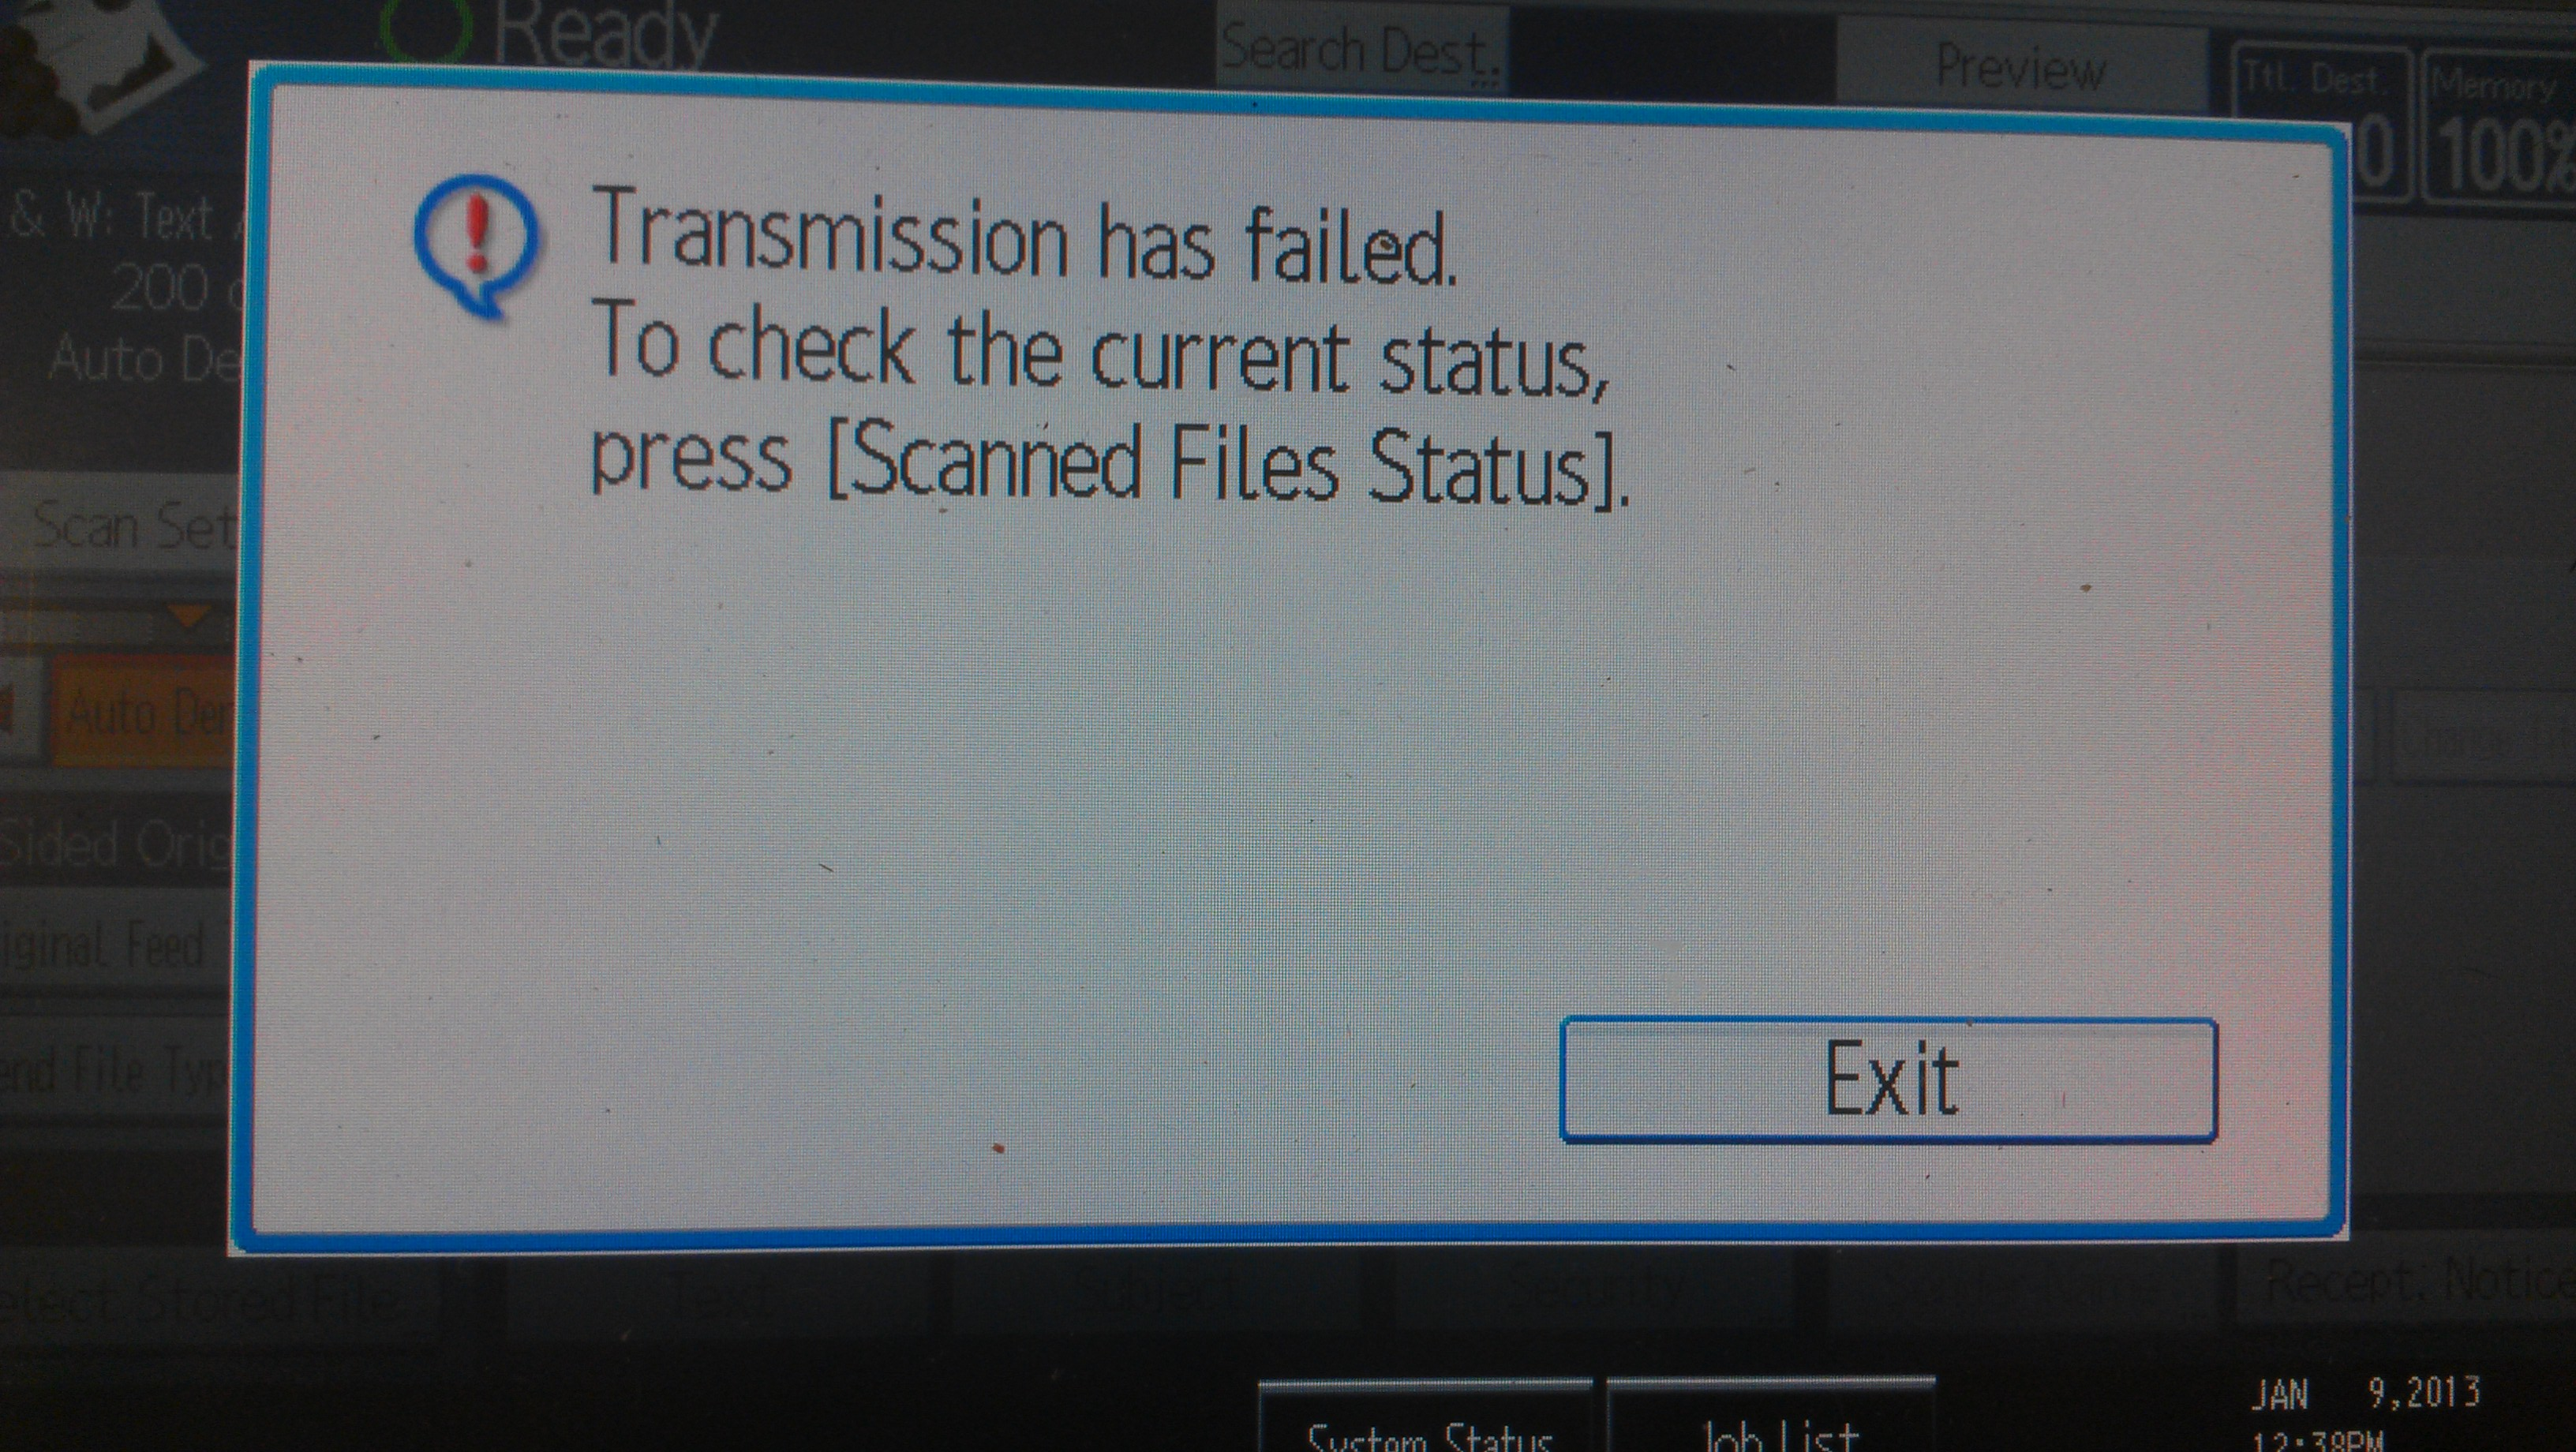 Scanning to Windows 8 from Ricoh